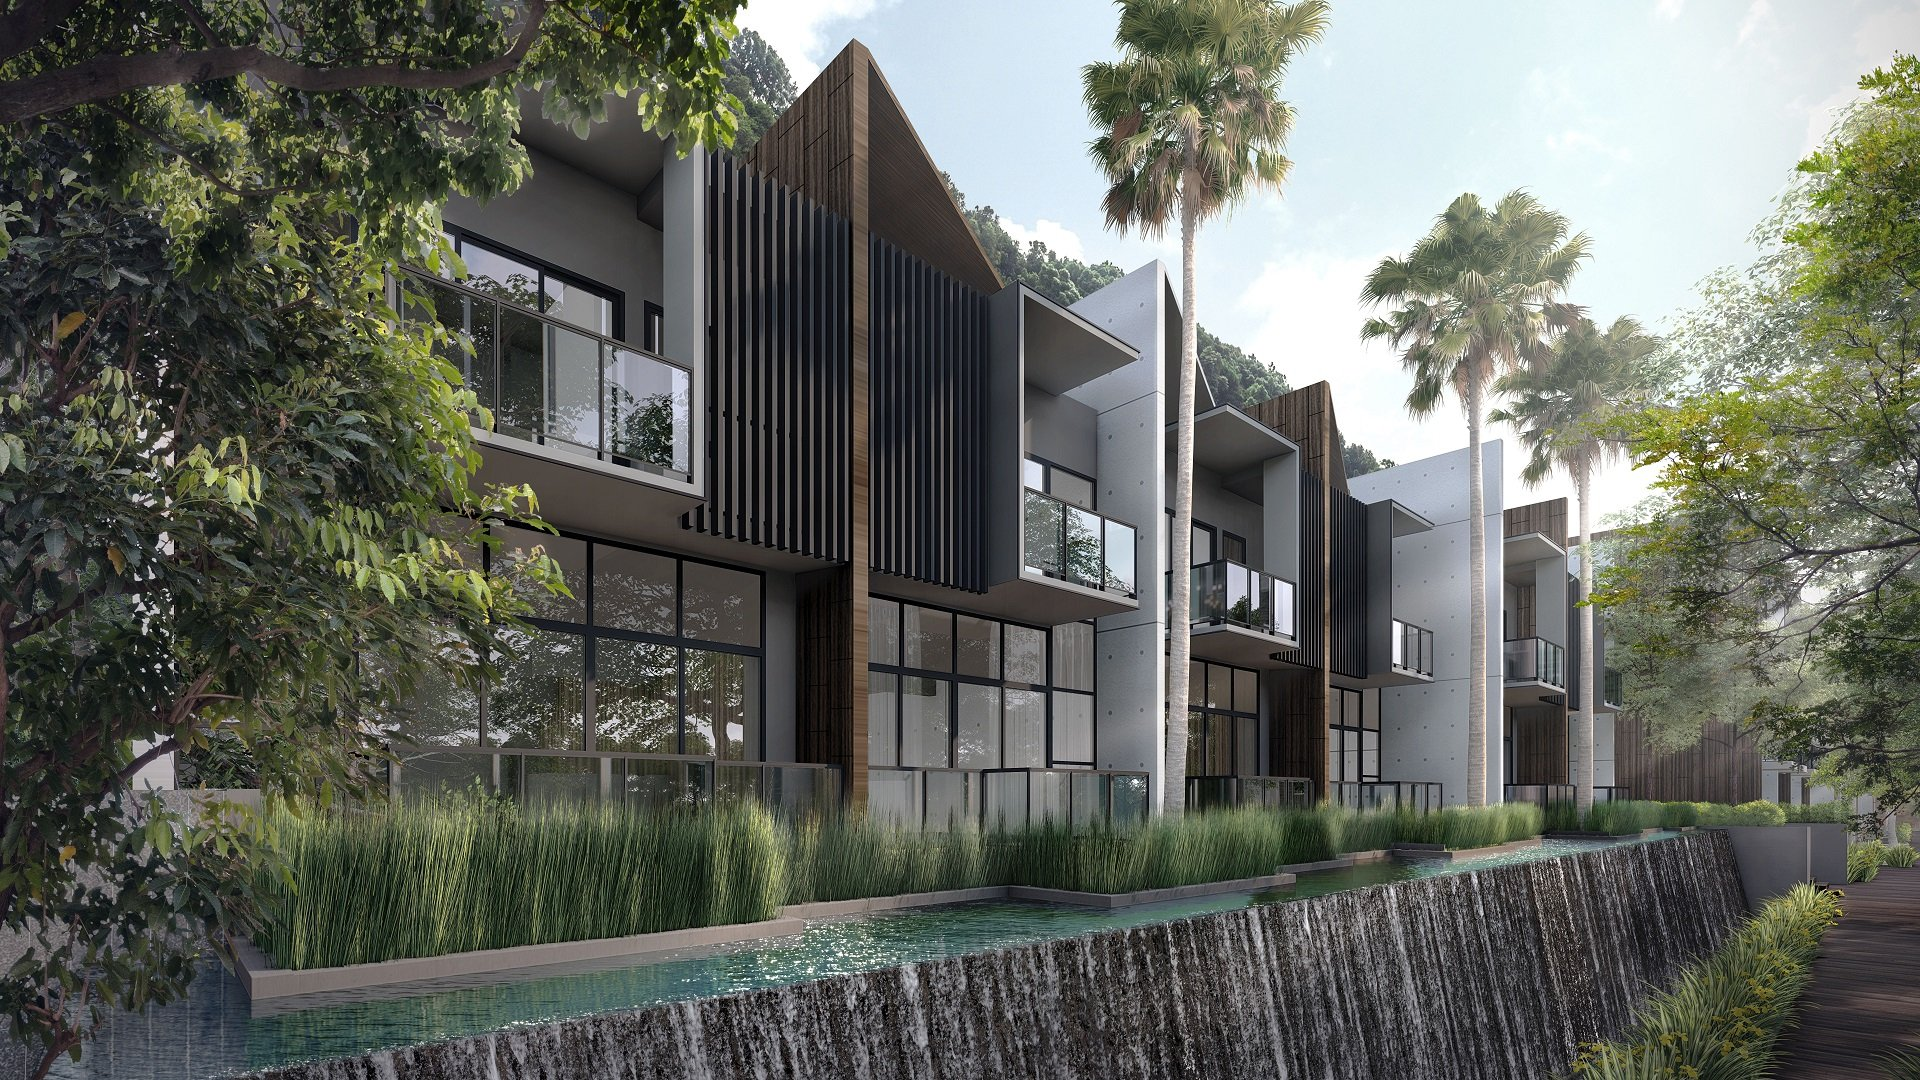 Strata landed housing: Reap the twin benefits of a landed home experience and the perks of condo living